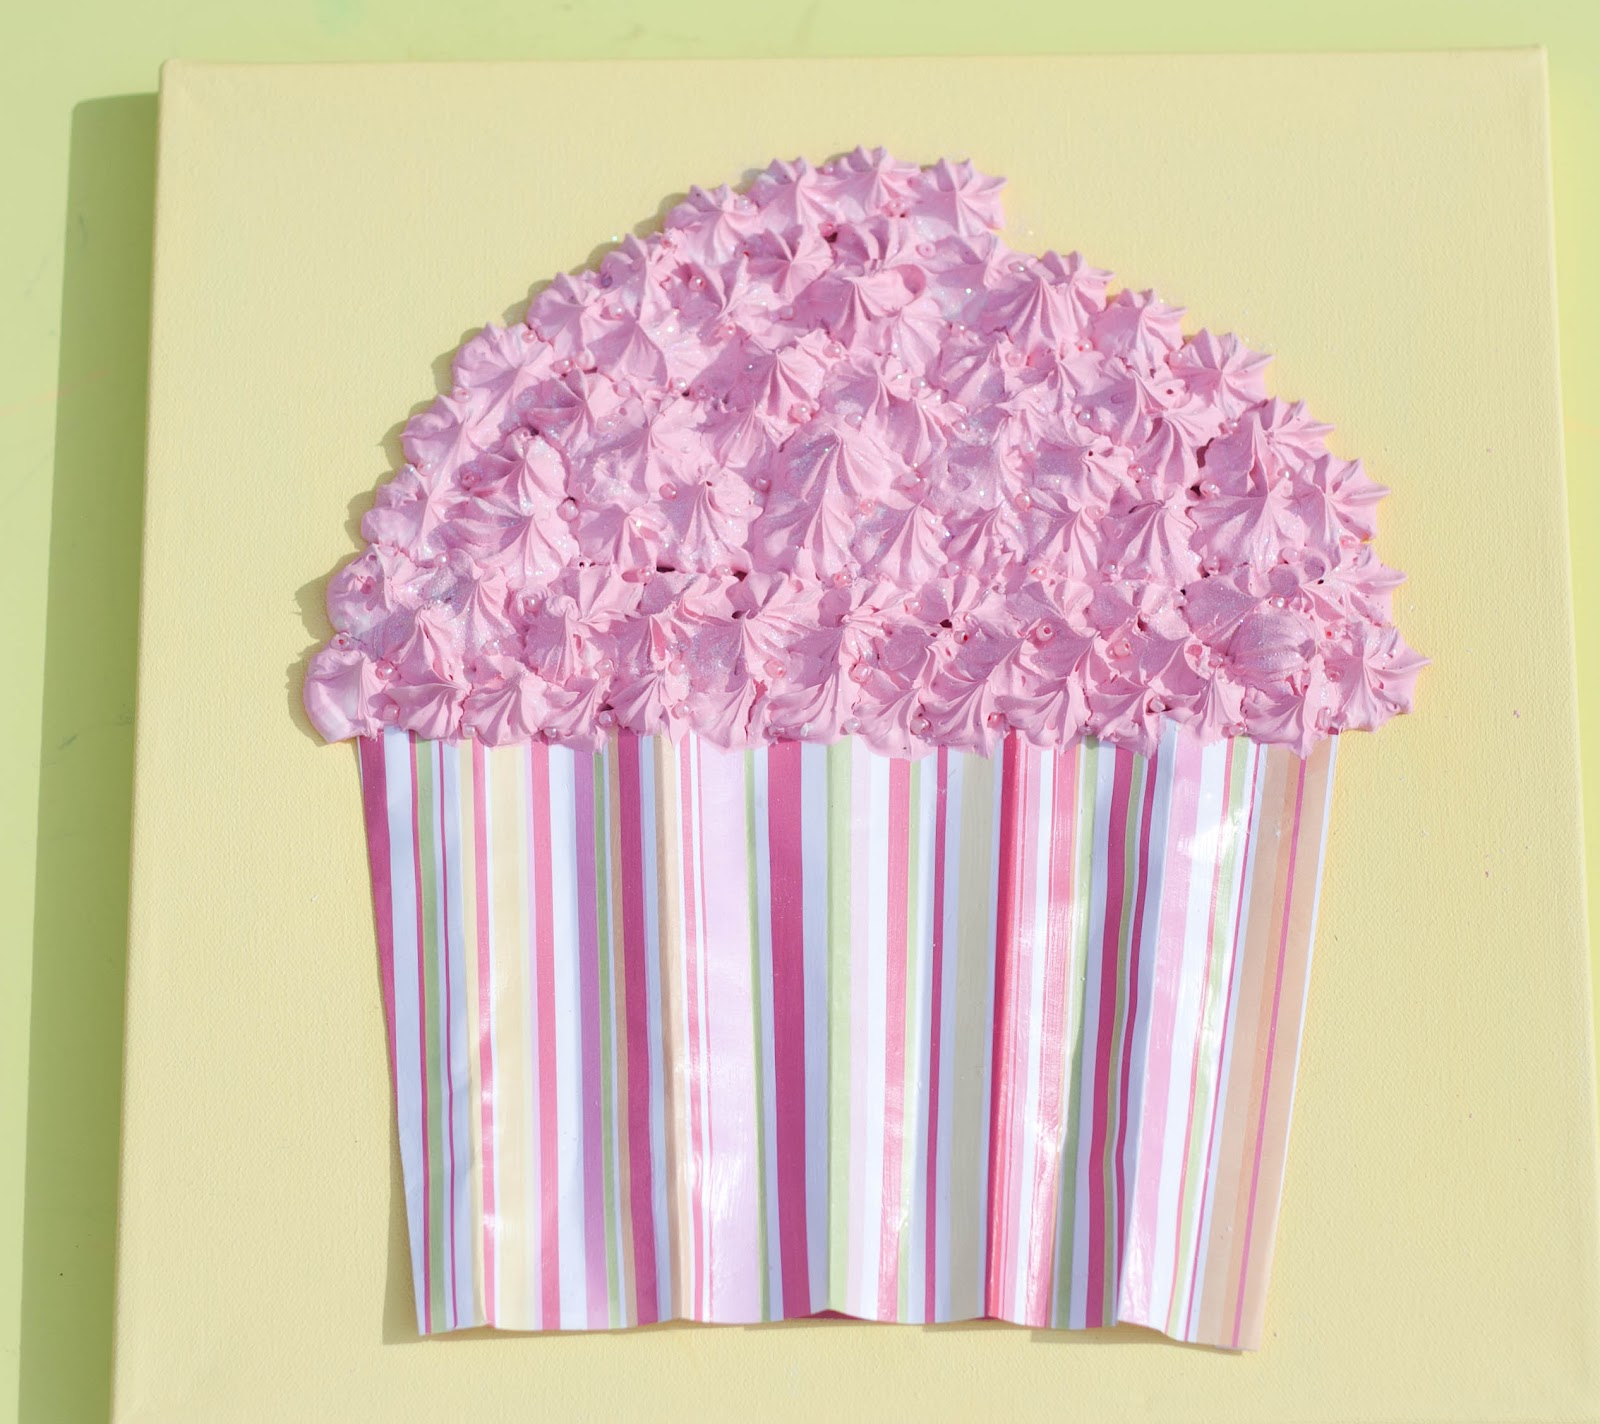 Cupcake Wall Art - My Insanity